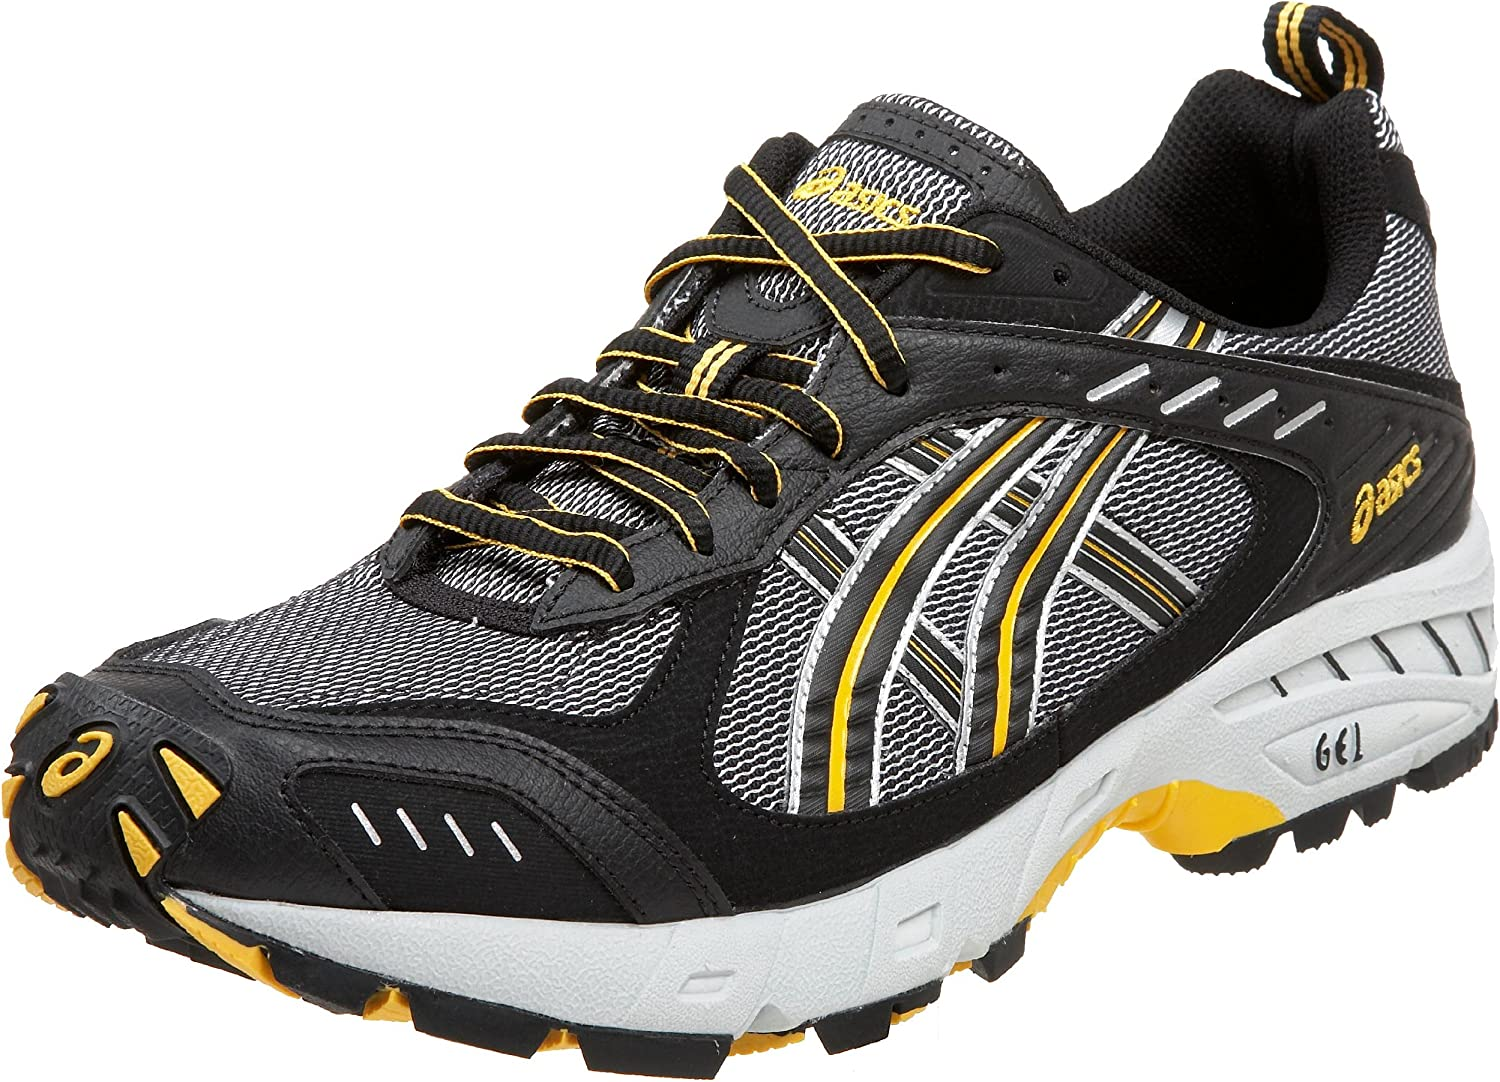 Asics Mens Gel-Odyssey Walking Shoes Black Sports Outdoors Water Resistant